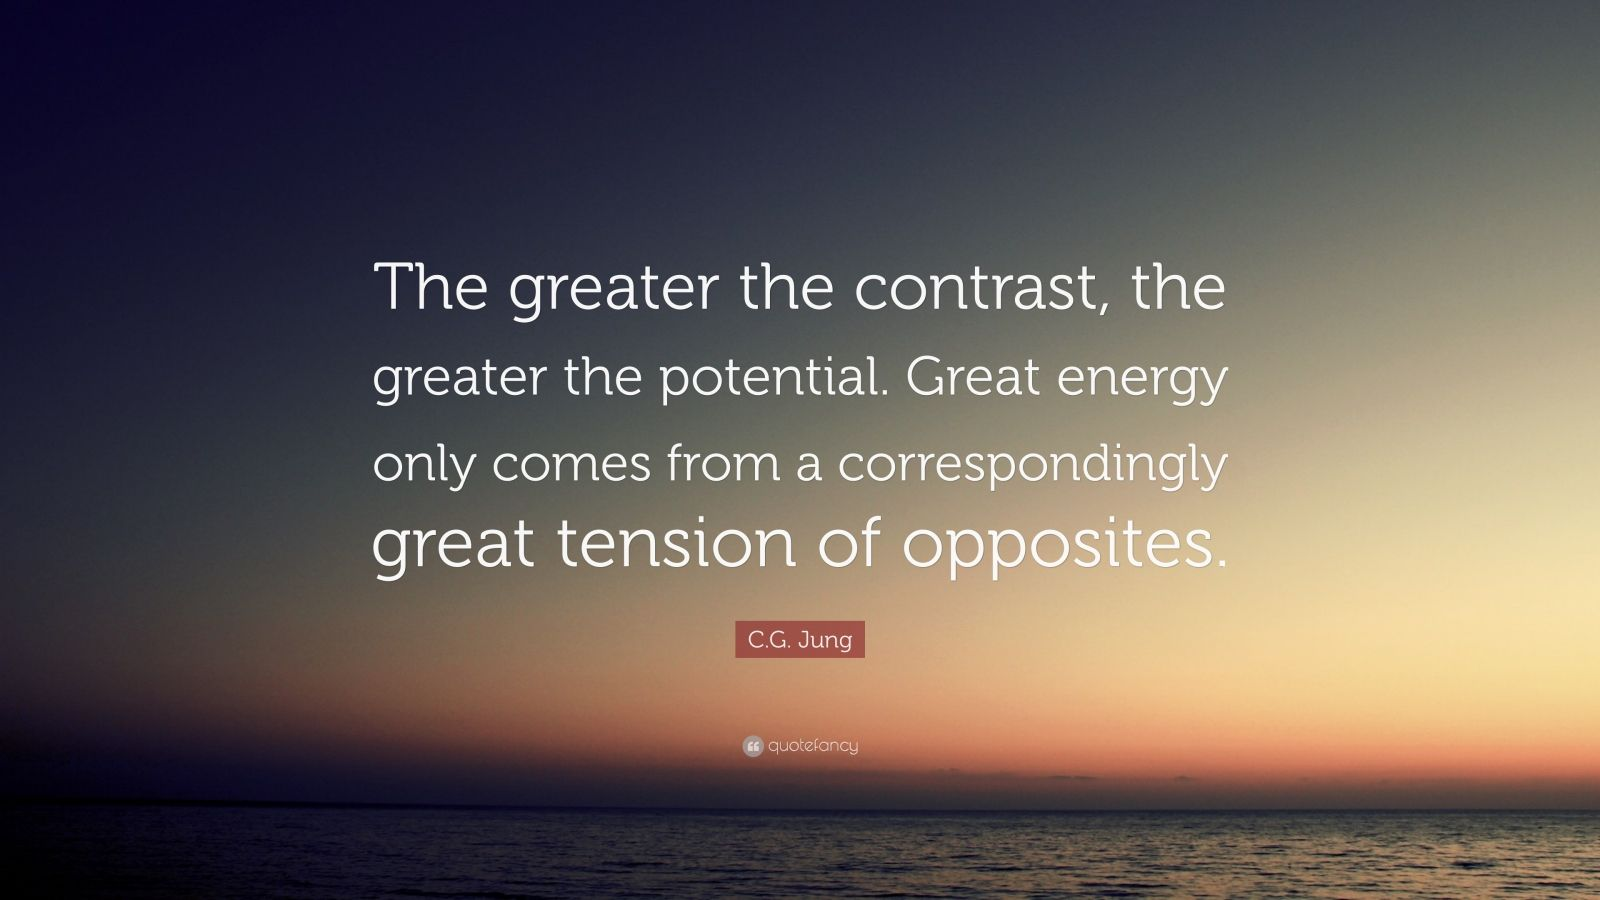 """C.G. Jung Quote: """"The greater the contrast, the greater the potential. Great energy only comes from a correspondingly great tension of opposites."""""""